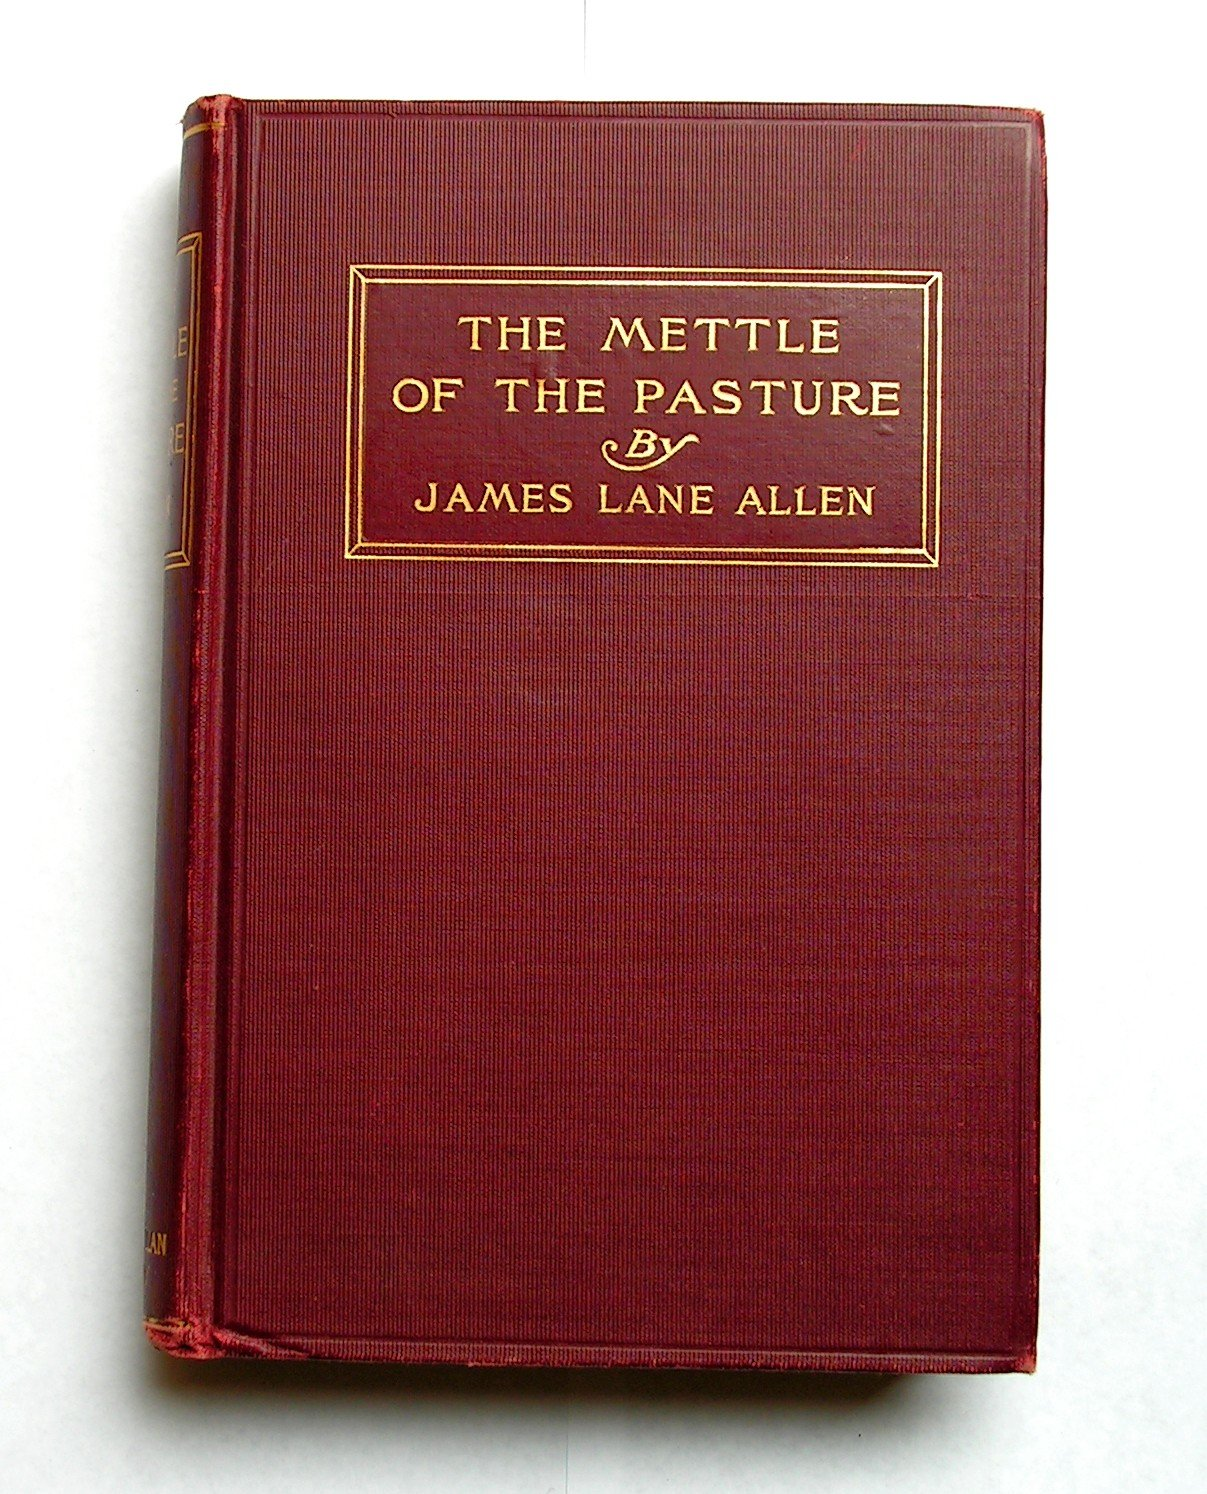 1903 The Mettle of the Pasture - James Lane Allen